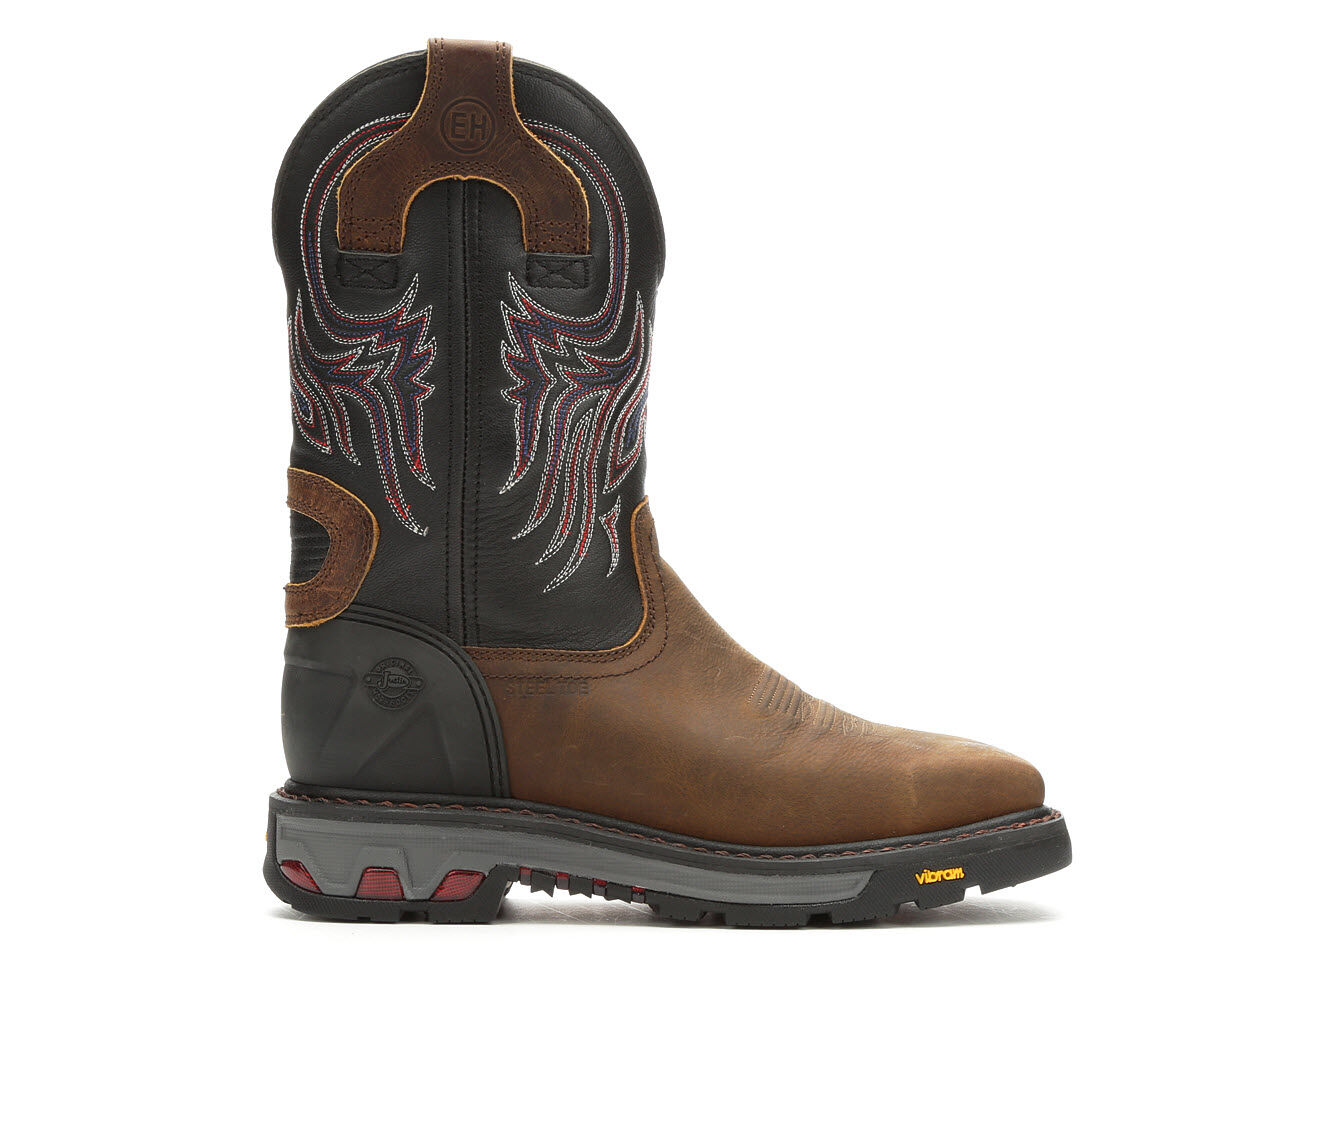 Quite Brilliant Men's Justin Boots Commander Steel Toe Cowboy Boots Brown/Black